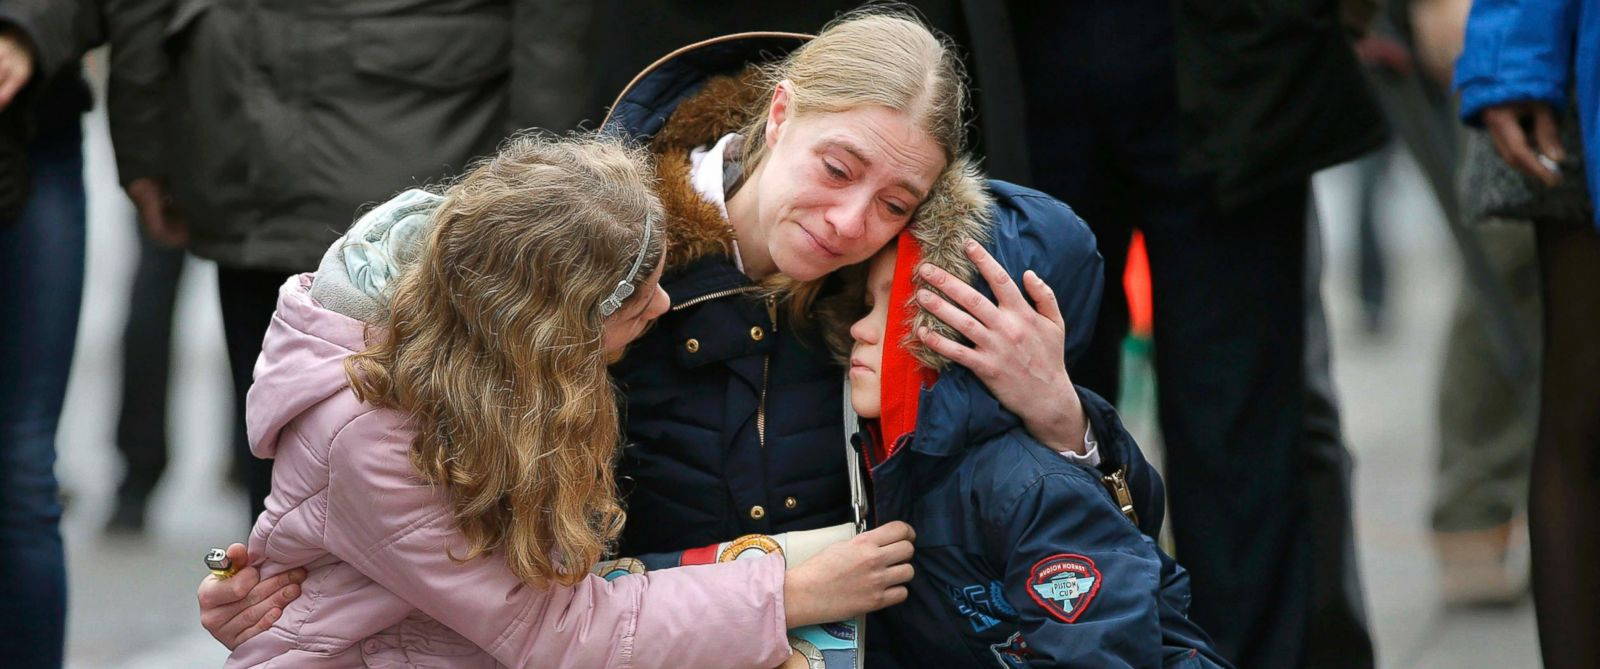 PHOTO: A woman consoles her children at a street memorial following Tuesdays bomb attacks in Brussels on March 23, 2016.